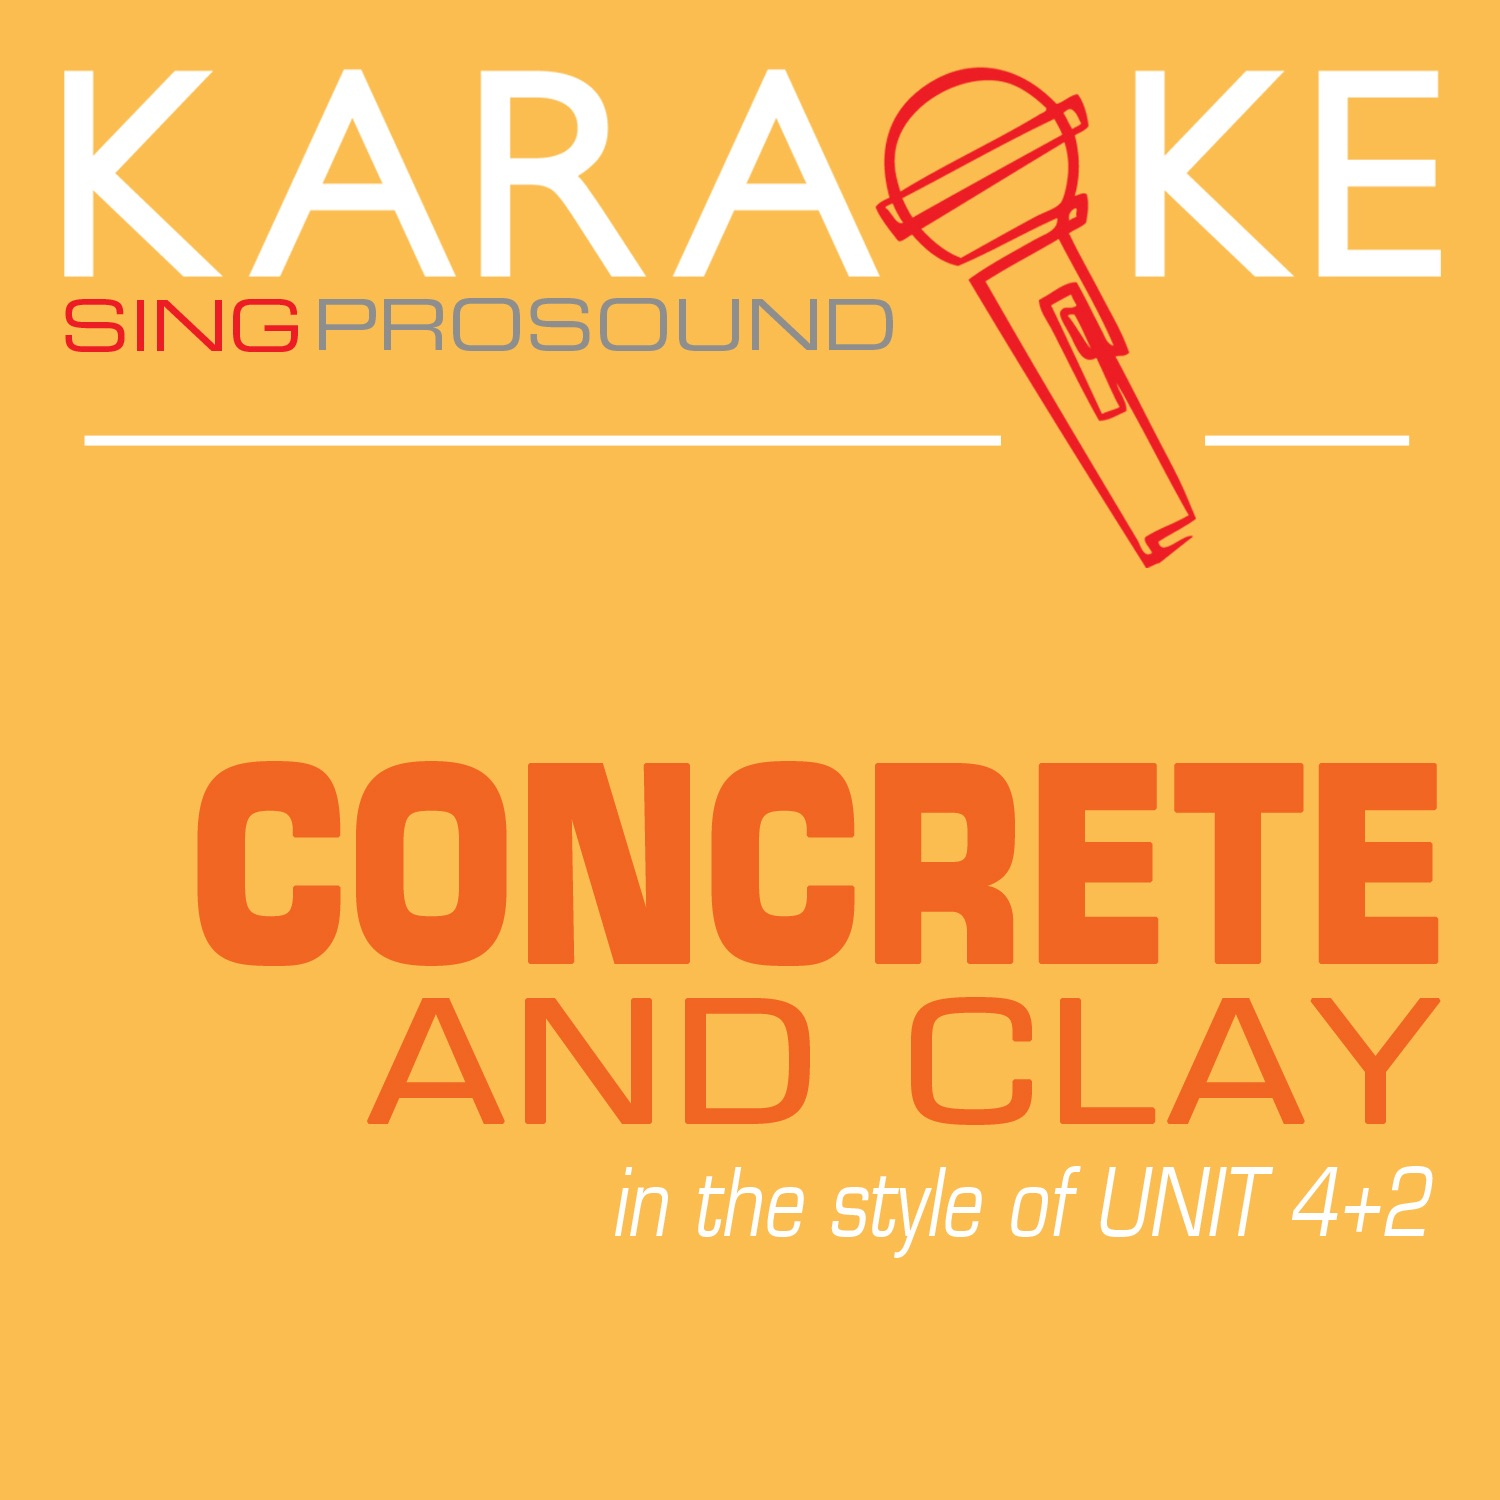 Concrete and Clay (In the Style of Unit Four Plus Two) [Karaoke with Background Vocal] - Single